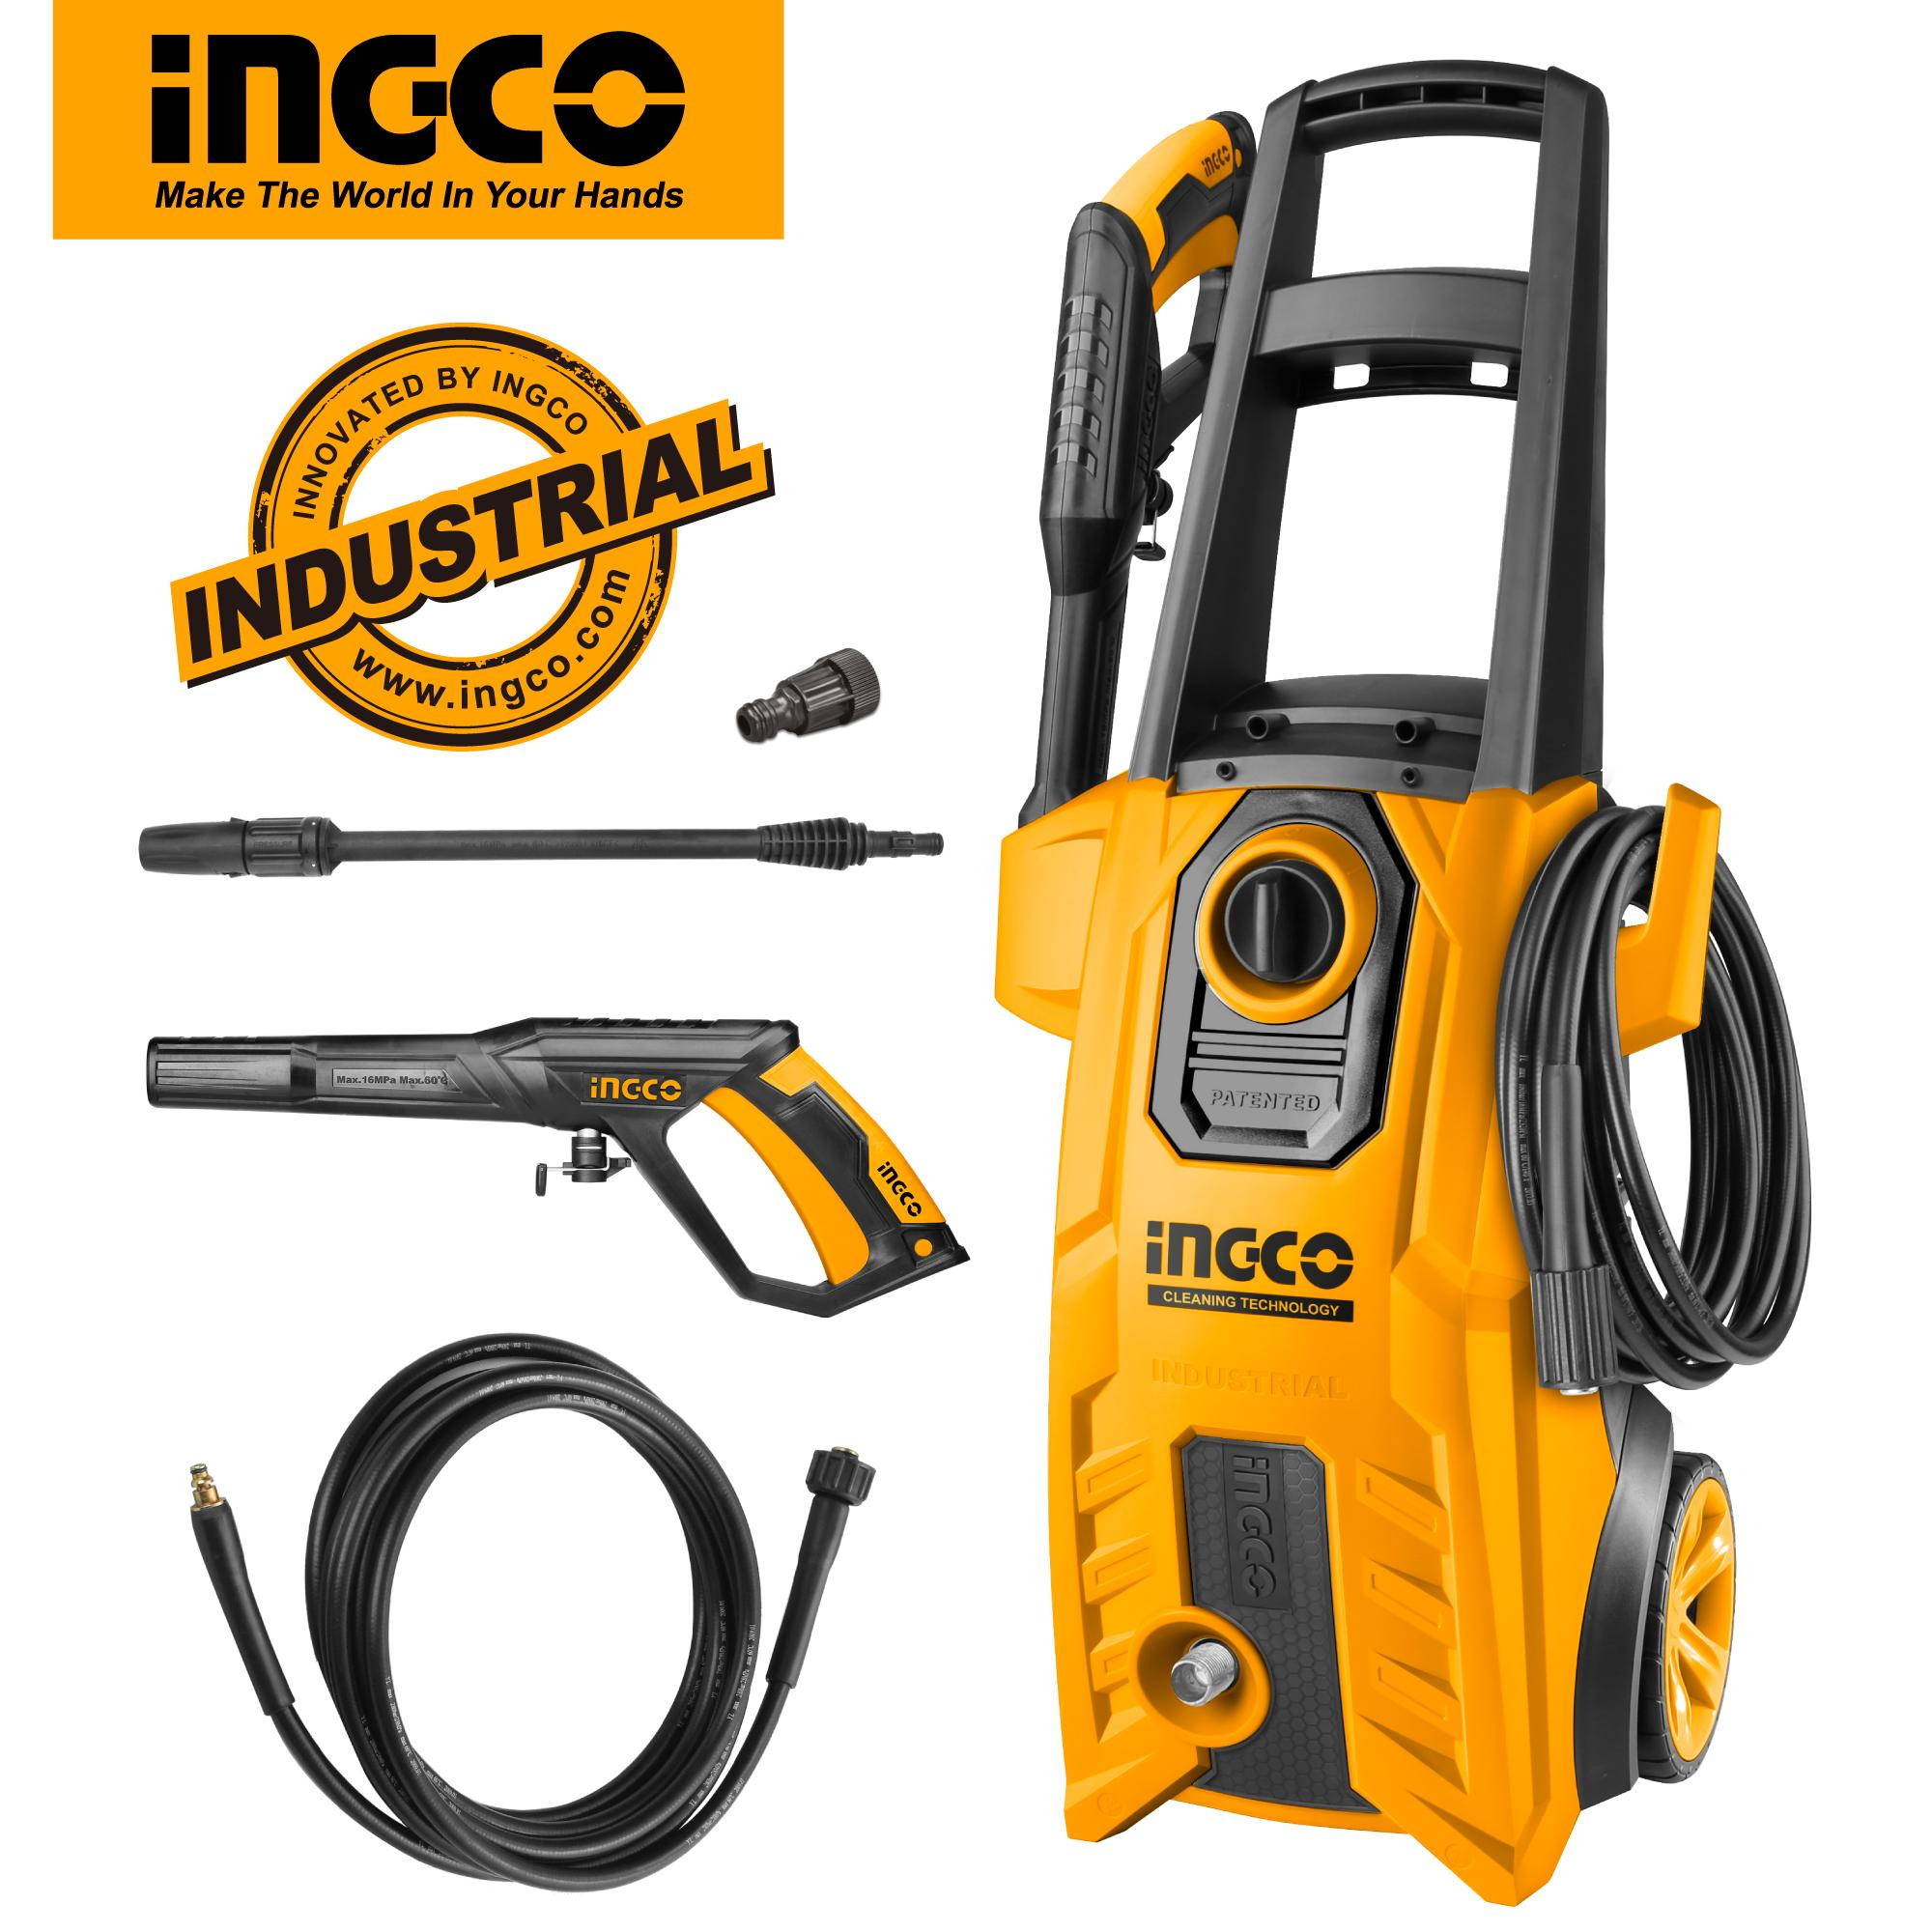 INGCO 1800W High Pressure Washer, Pure Copper Wire, 5m High Pressure Hose HPWR18008